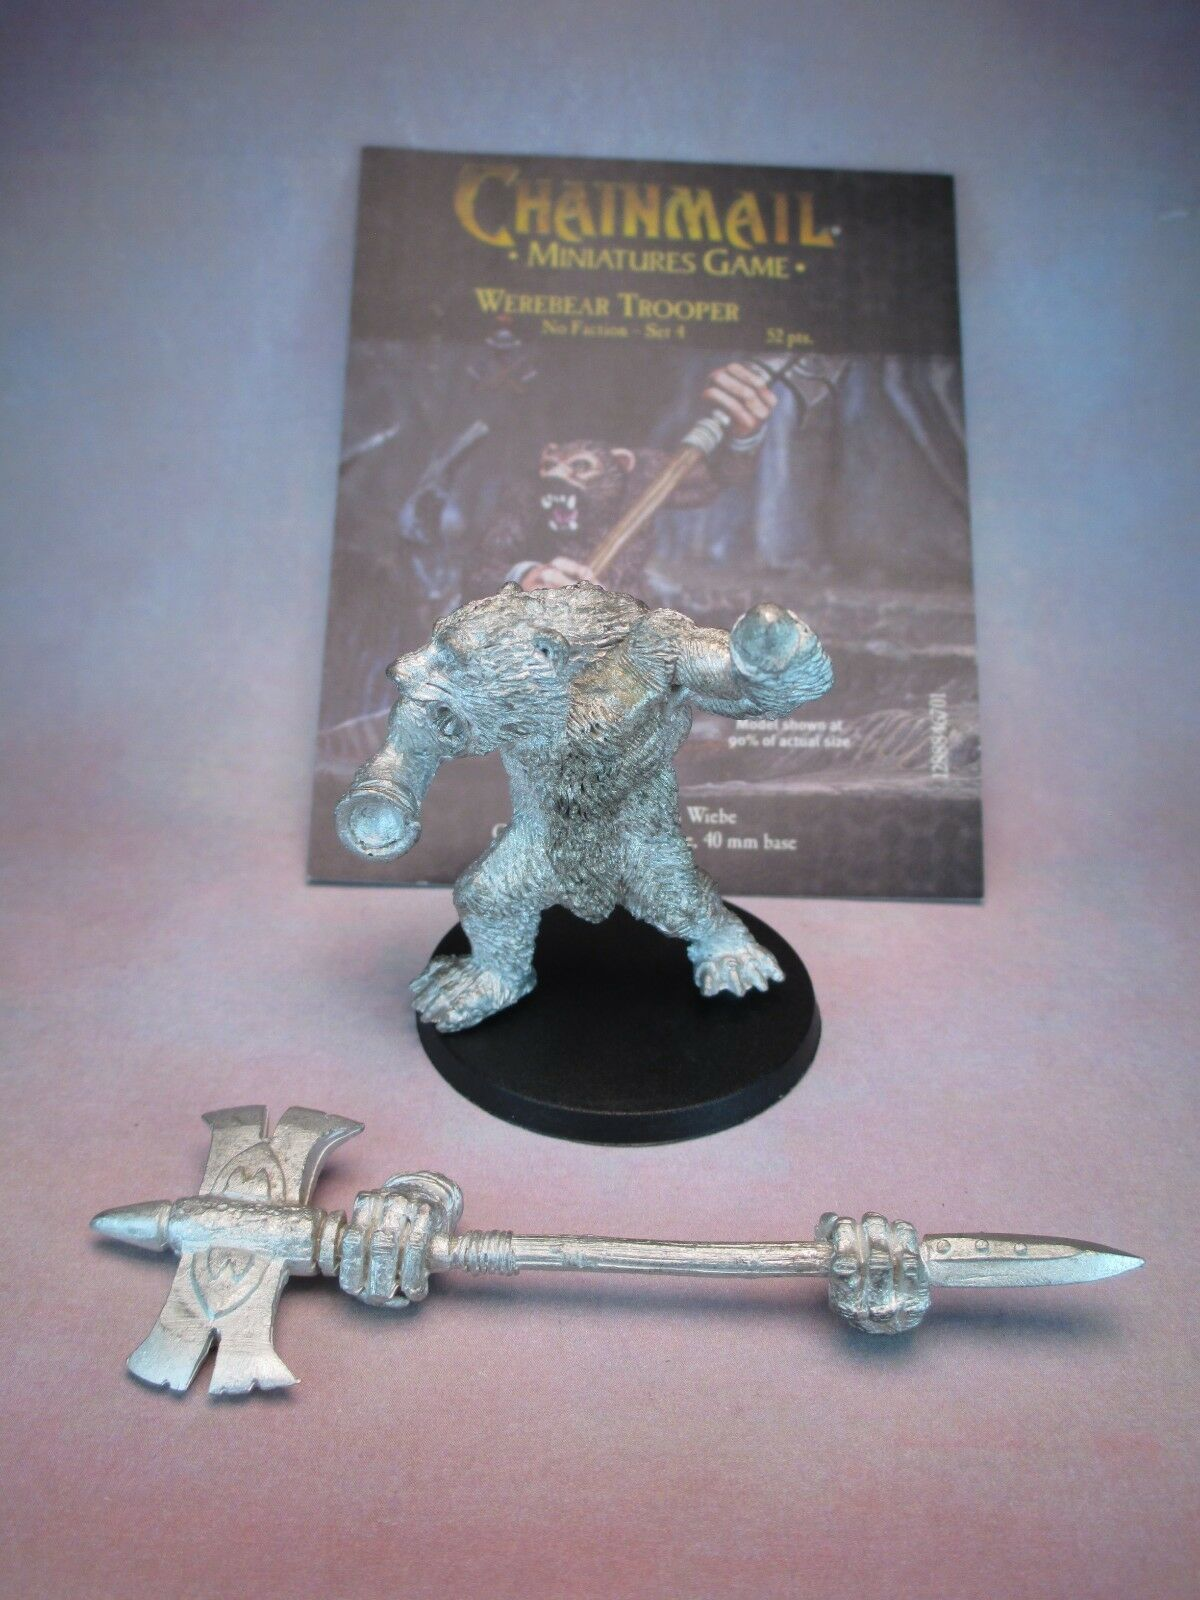 Chainmail WEREBEAR WotC METAL miniature D&D Pathfinder were bear CARD included